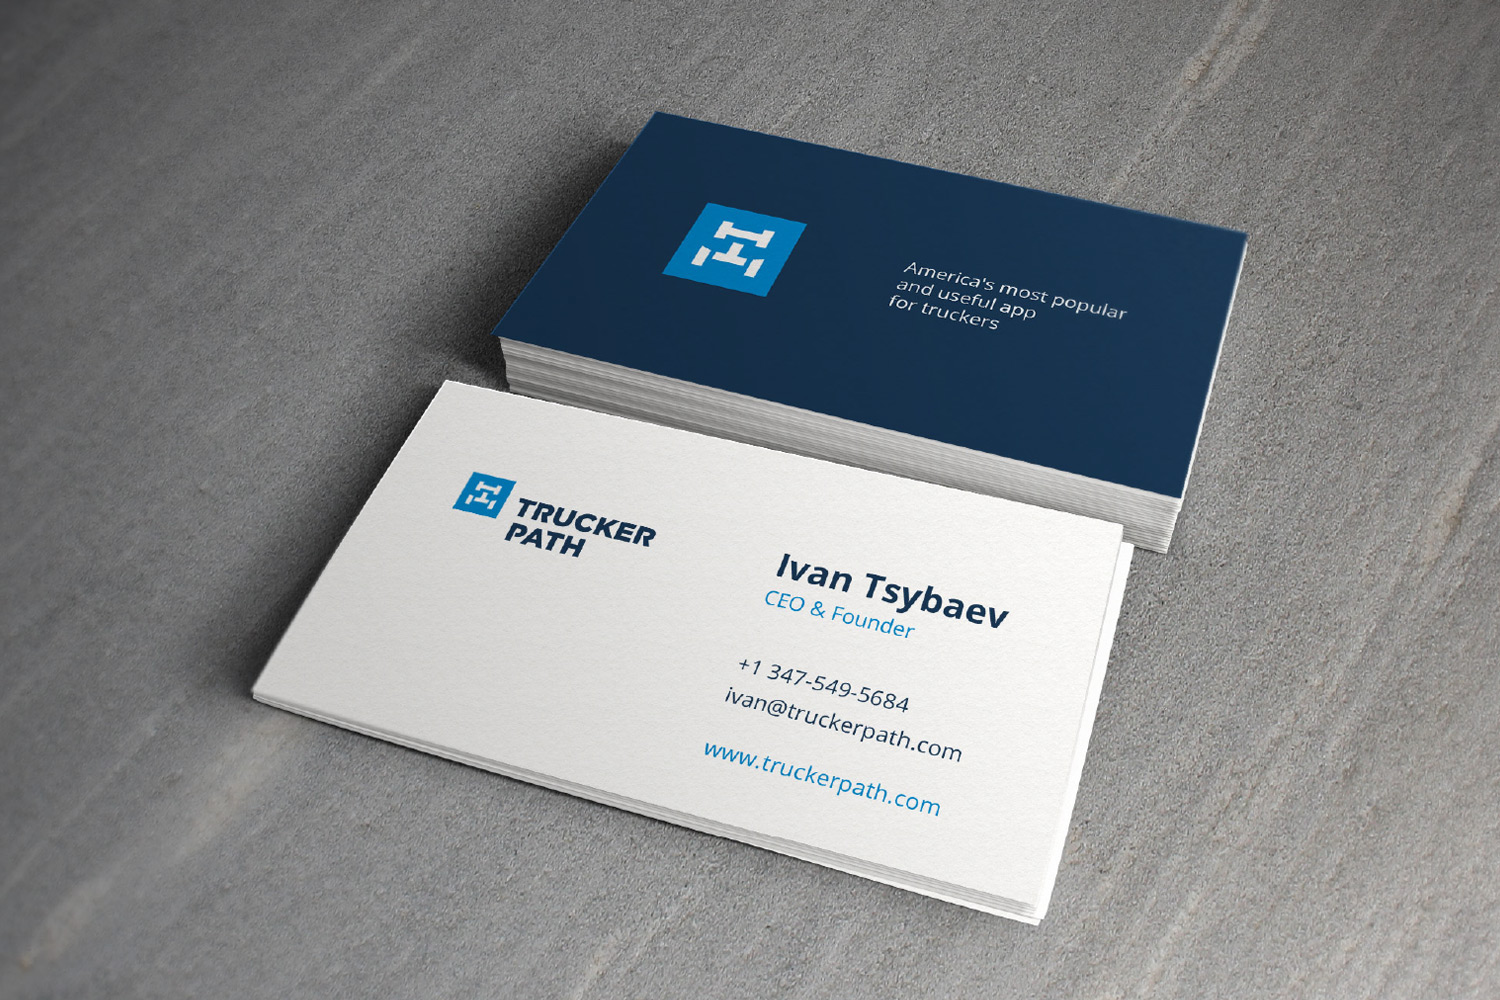 Business Cards For Truckers - Business Card Tips